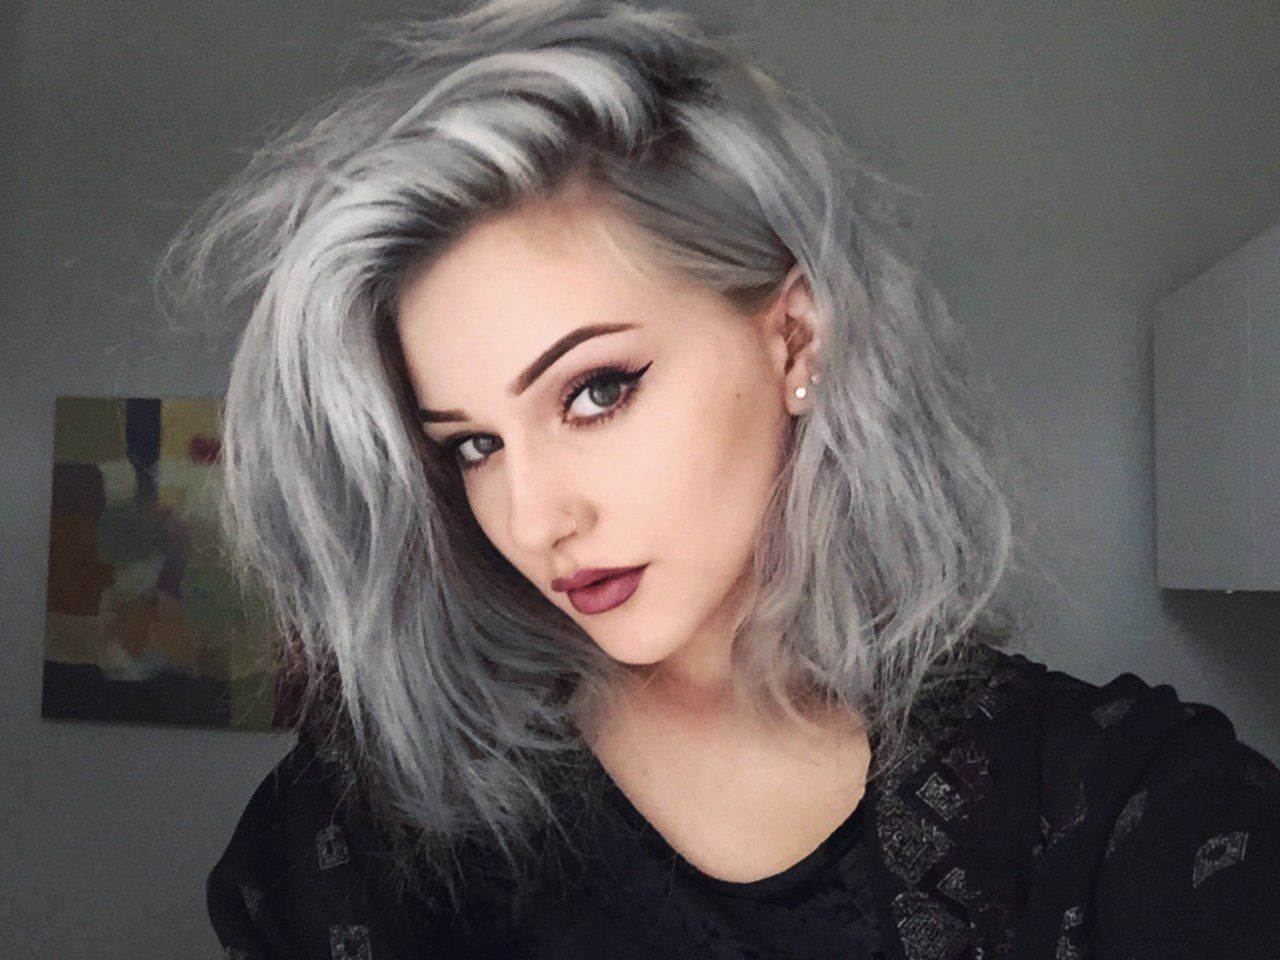 Gray Hair Wigs For African American Women Quality Human Hair Wigs Highlights To Cover Grey Hair Grey And Purple Hair Ponytail Wigs Black Hair Wigs And Extensions